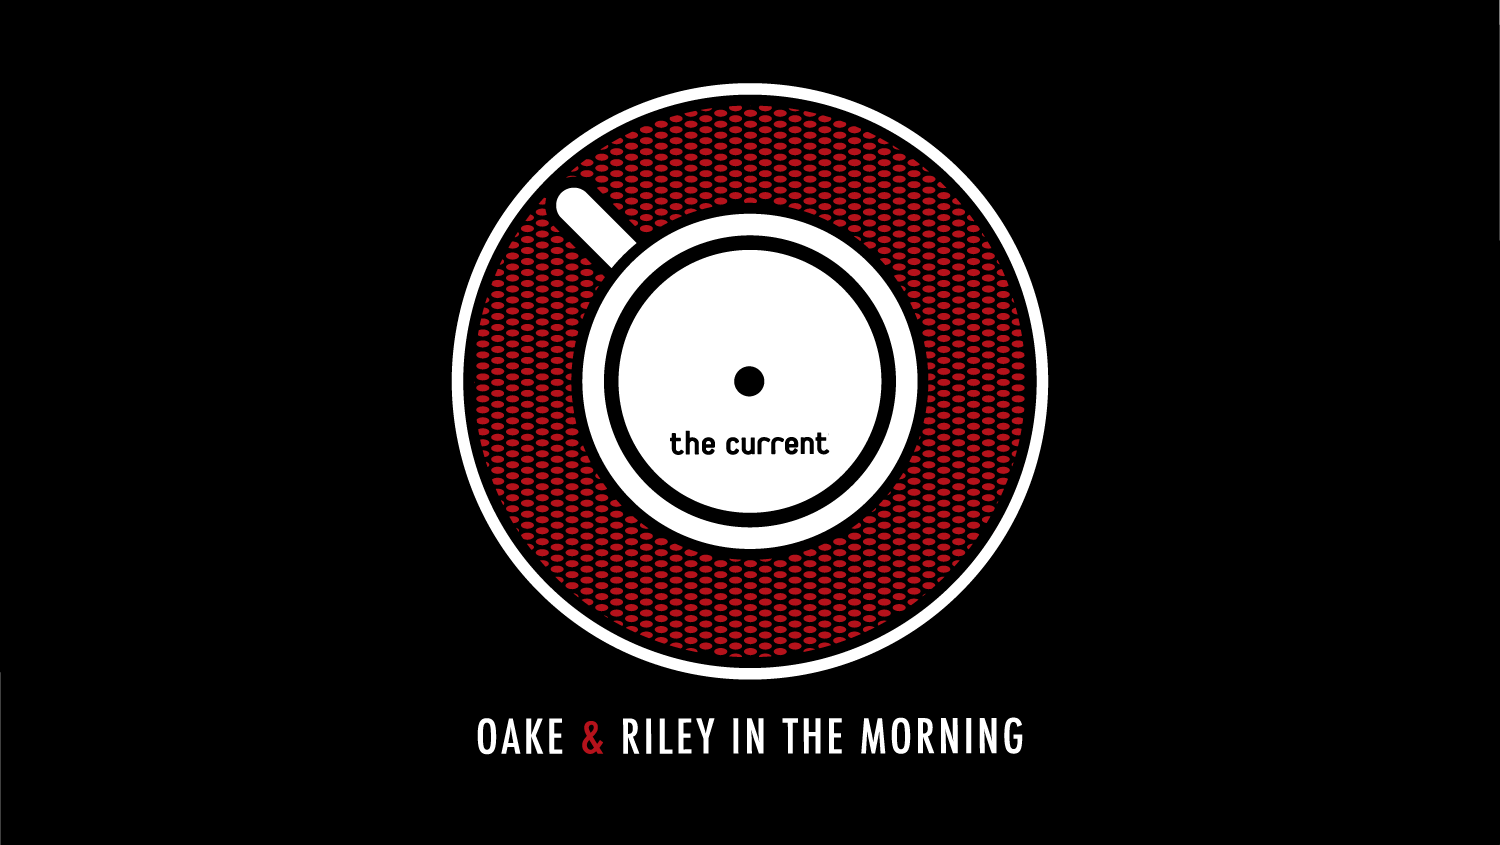 Coffee Break graphic Oake & Riley